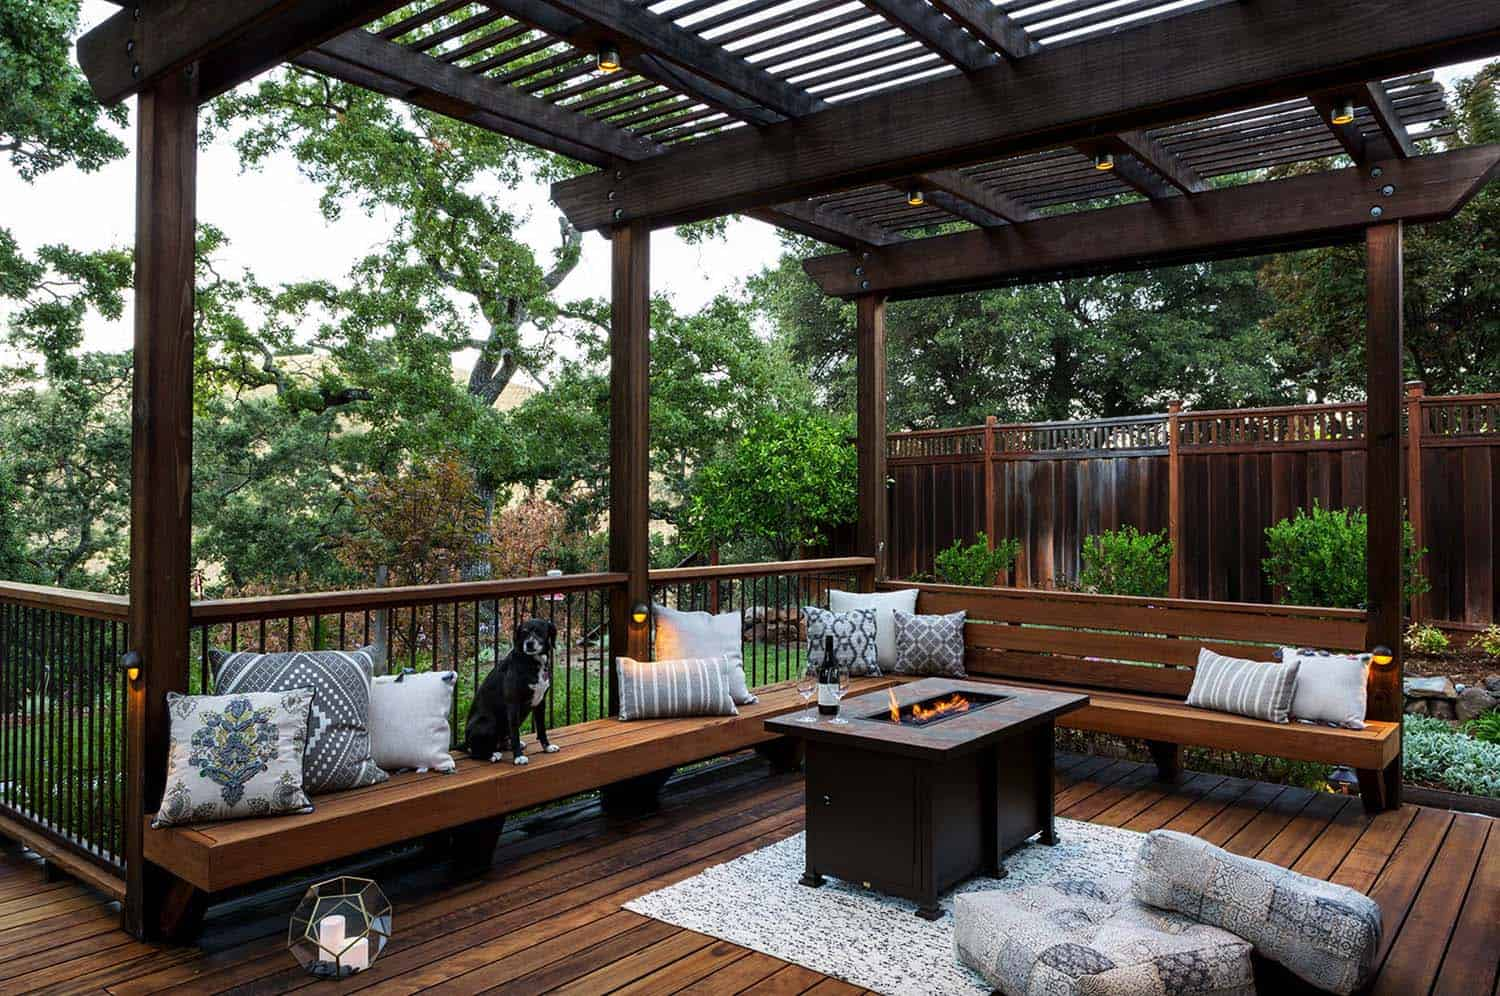 33 Fabulous Ideas For Creating Beautiful Outdoor Living Spaces on Backyard Outdoor Living Spaces id=87455